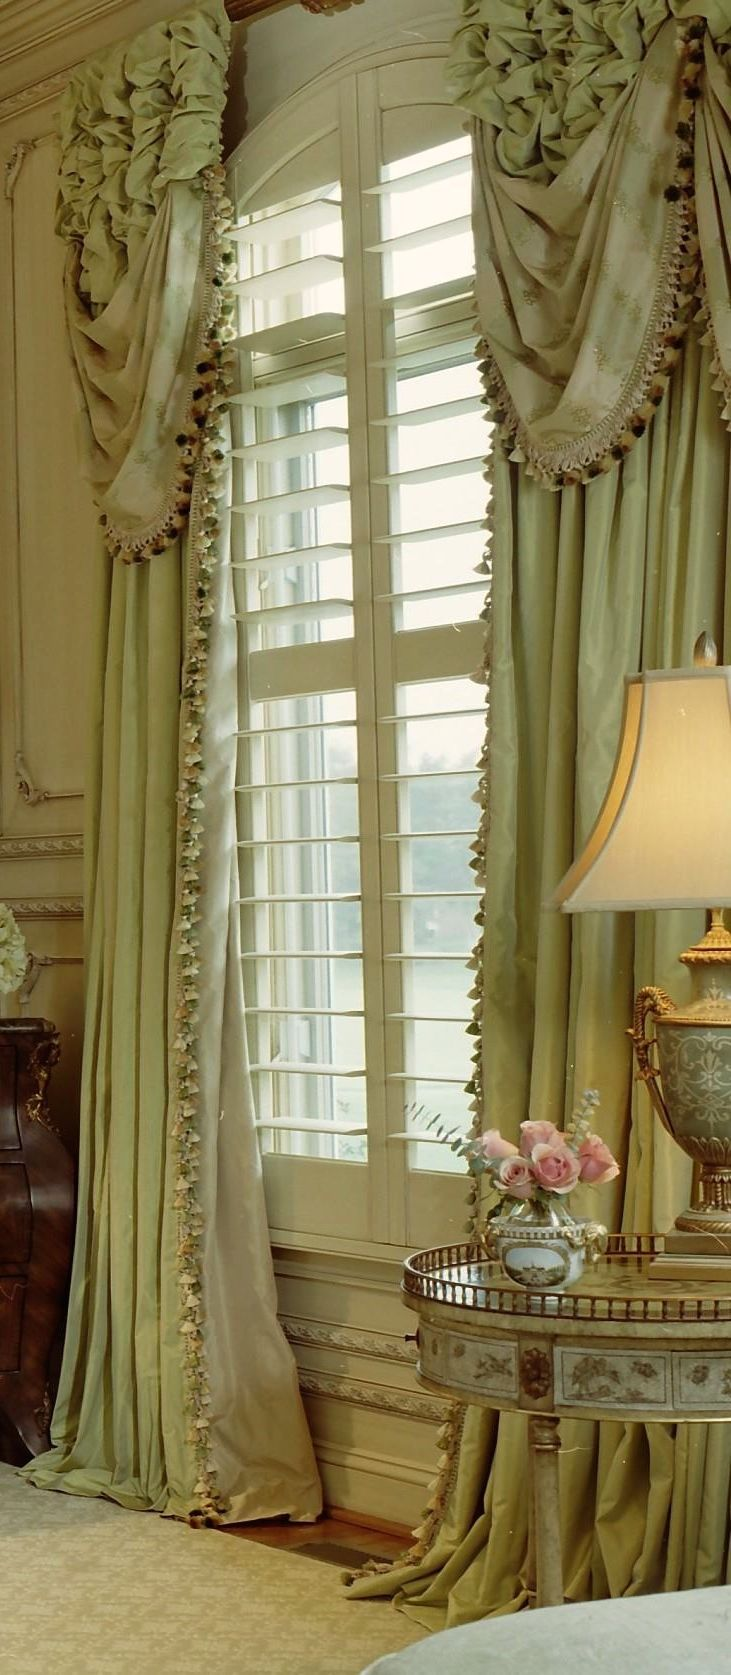 2575 best window treatments murals wallpaper images on formal swags layered over ruched draperies custom draperies shipping to all locations arched window treatments